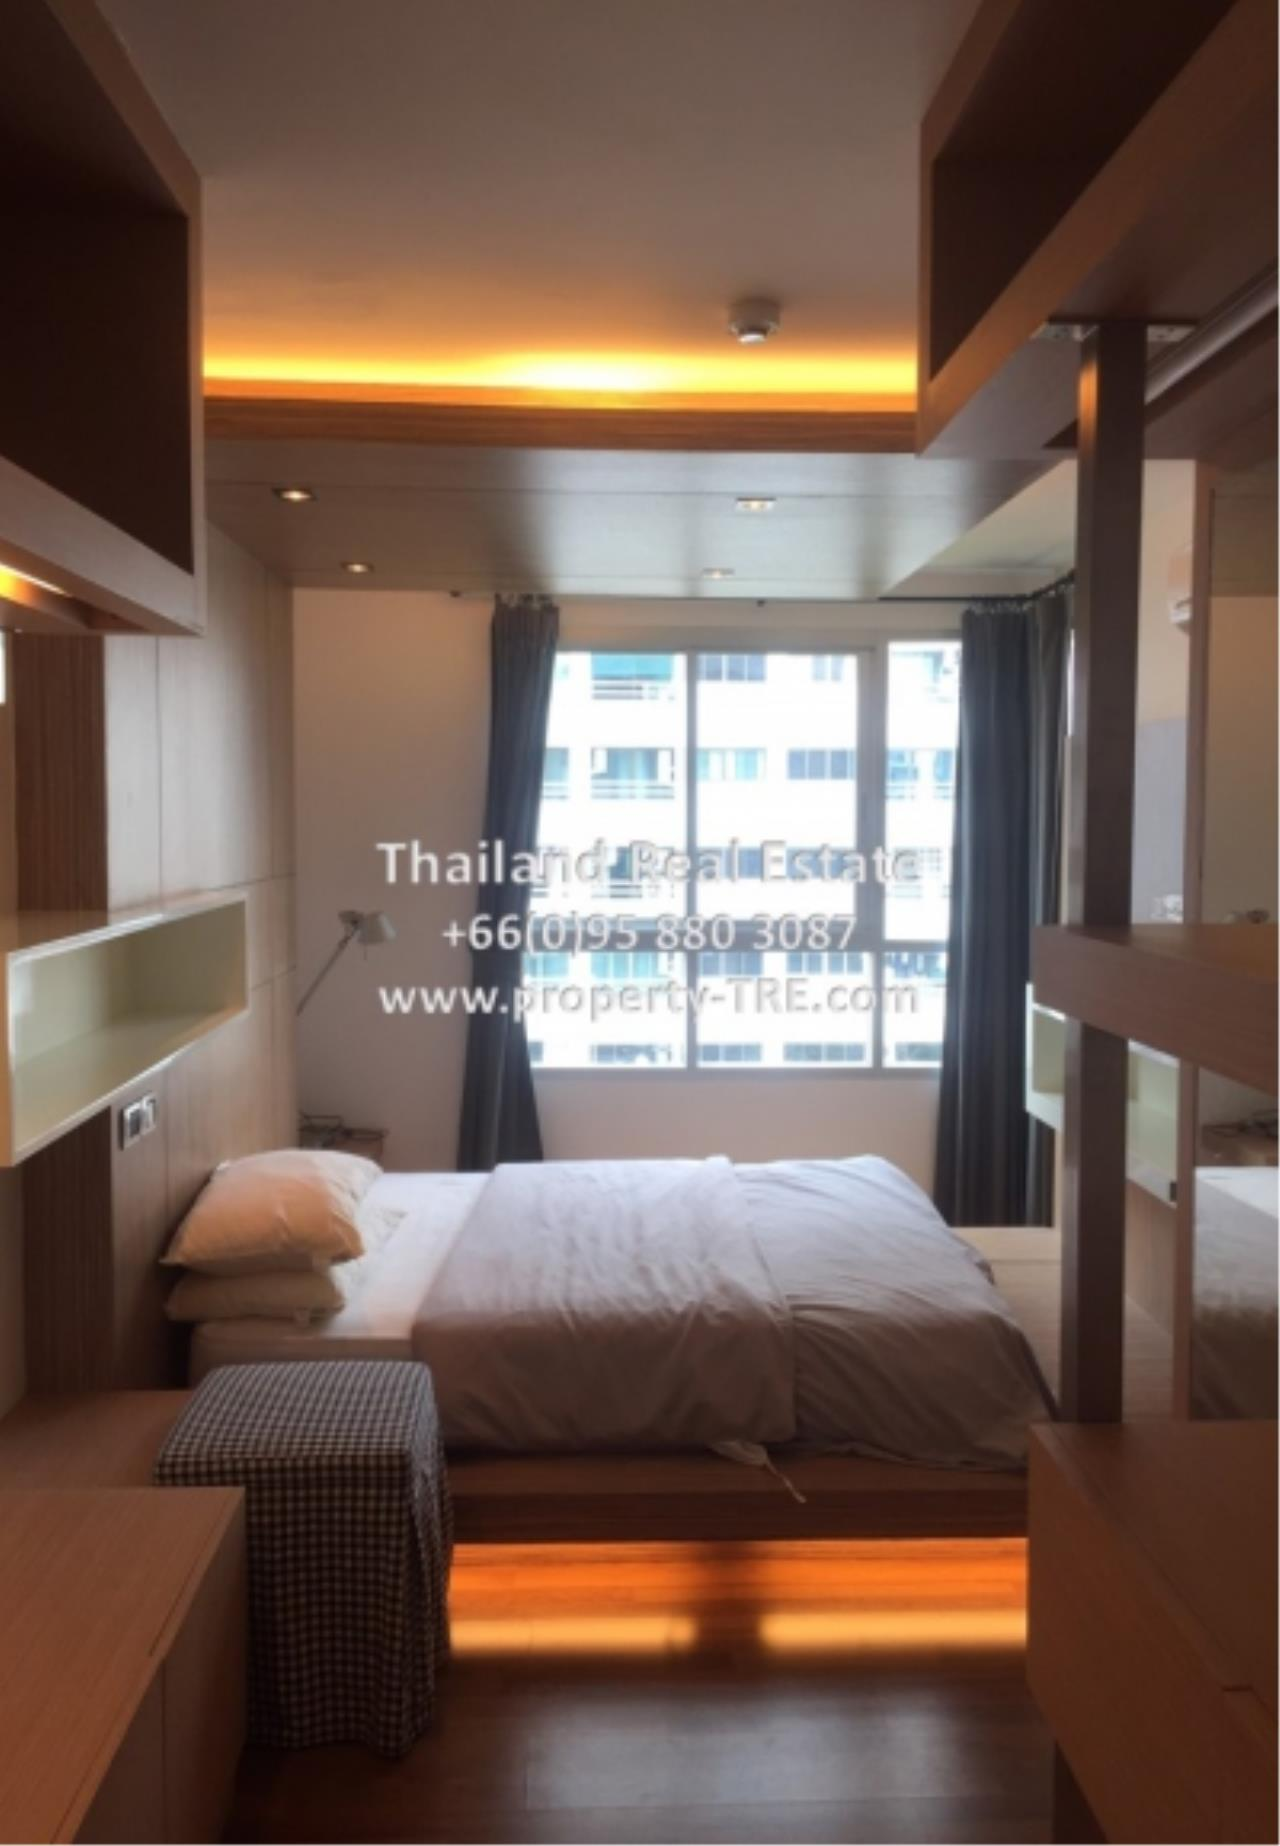 Thailand Real Estate Agency's 1 Bedroom Condo at The Clover near Thong Lo BTS(12671) 13